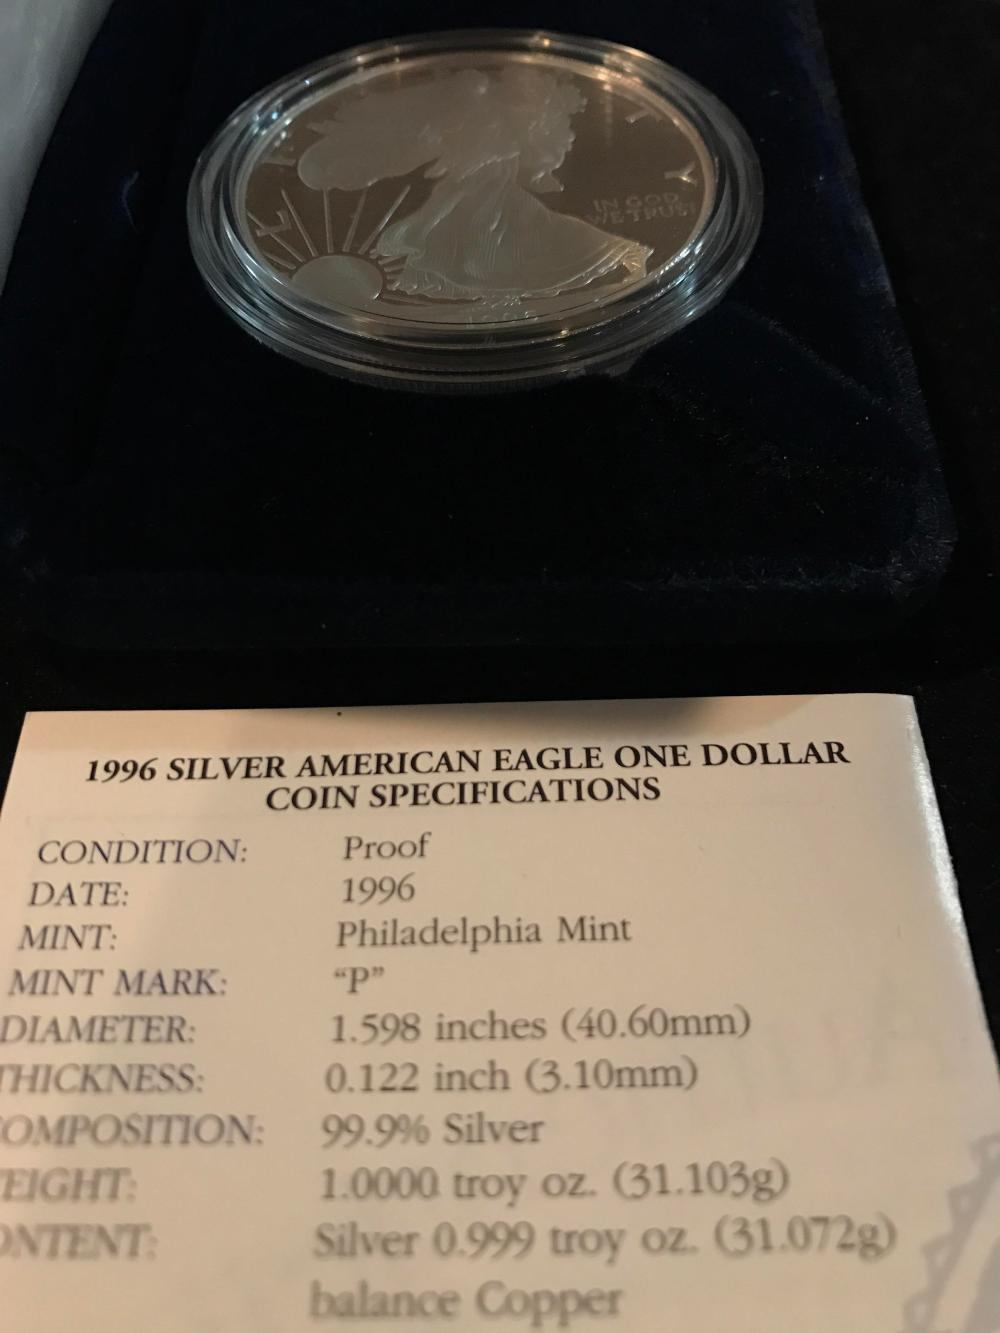 Lot 157: 1996 silver American eagle one dollar coin mint